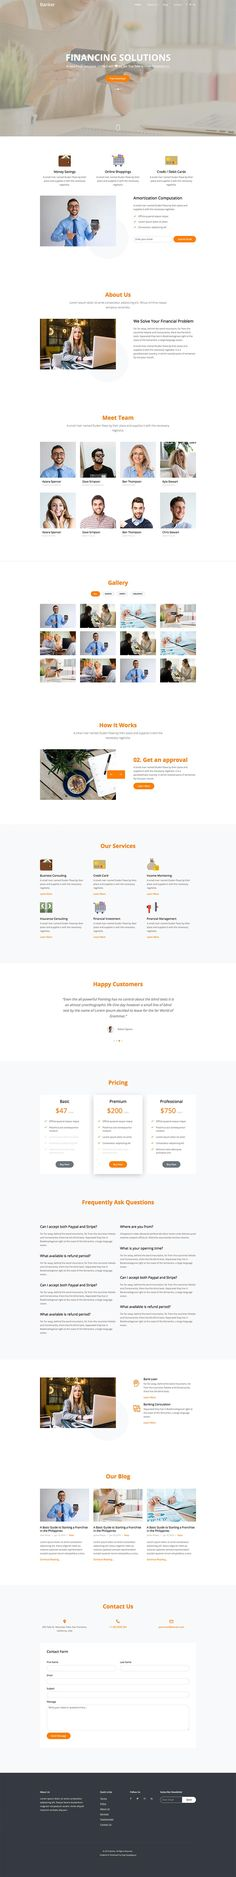 Banker is a free website template for banking, financial, credits, cooperatives and other forms of financial business. However, you can always tweak this free template to fit your needs. Free Web Design, Free Website Templates, Business, Fit, Shape, Store, Business Illustration